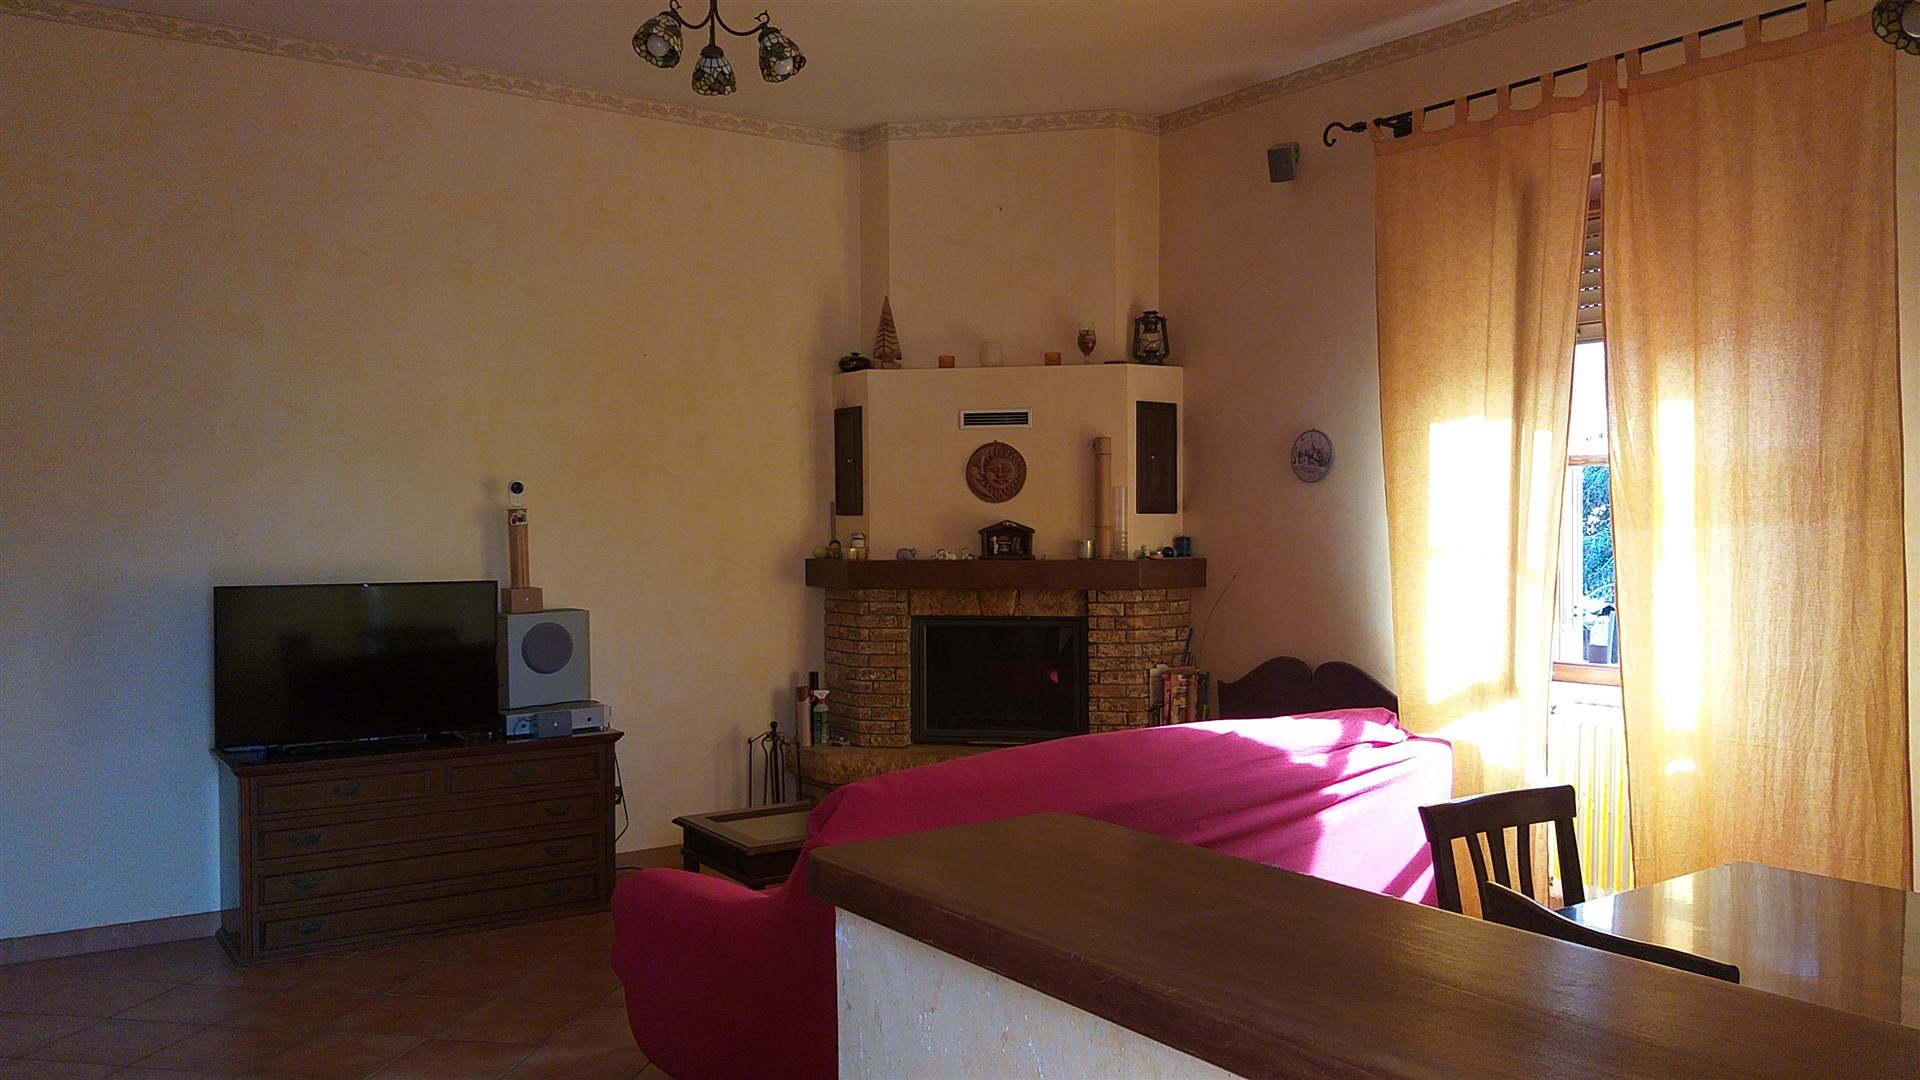 ULIVETO, CIVITAVECCHIA, Apartment for sale of 131 Sq. mt., Good condition, Heating Individual heating system, Energetic class: G, Epi: 175 kwh/m2